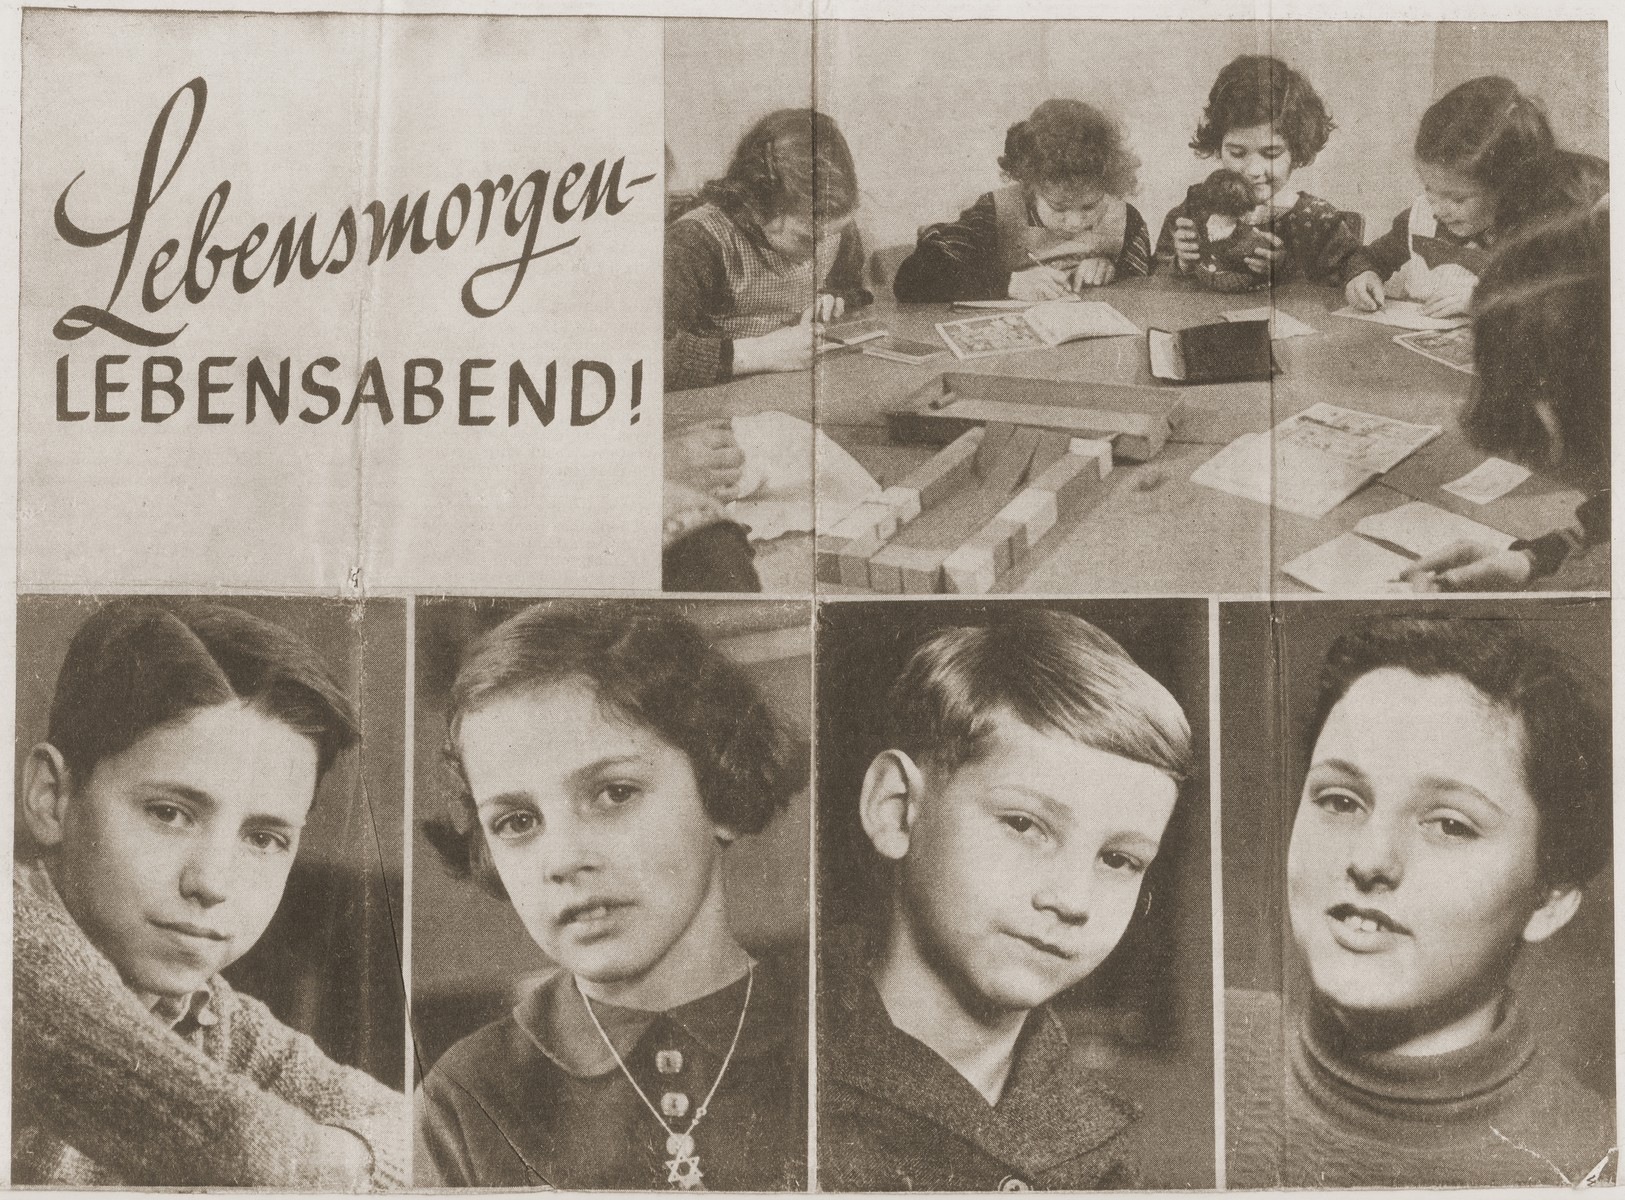 A series of photographs of children at the Baruch Auerbach Jewish orphanage in Berlin that was published in the Jewish newspaper, Juedisches Nachrichtenblatt, on March 10, 1939.    Heinz Stephan Lewy is pictured at the bottom left.  Ralph Moratz is ton the bottom row second from the right.